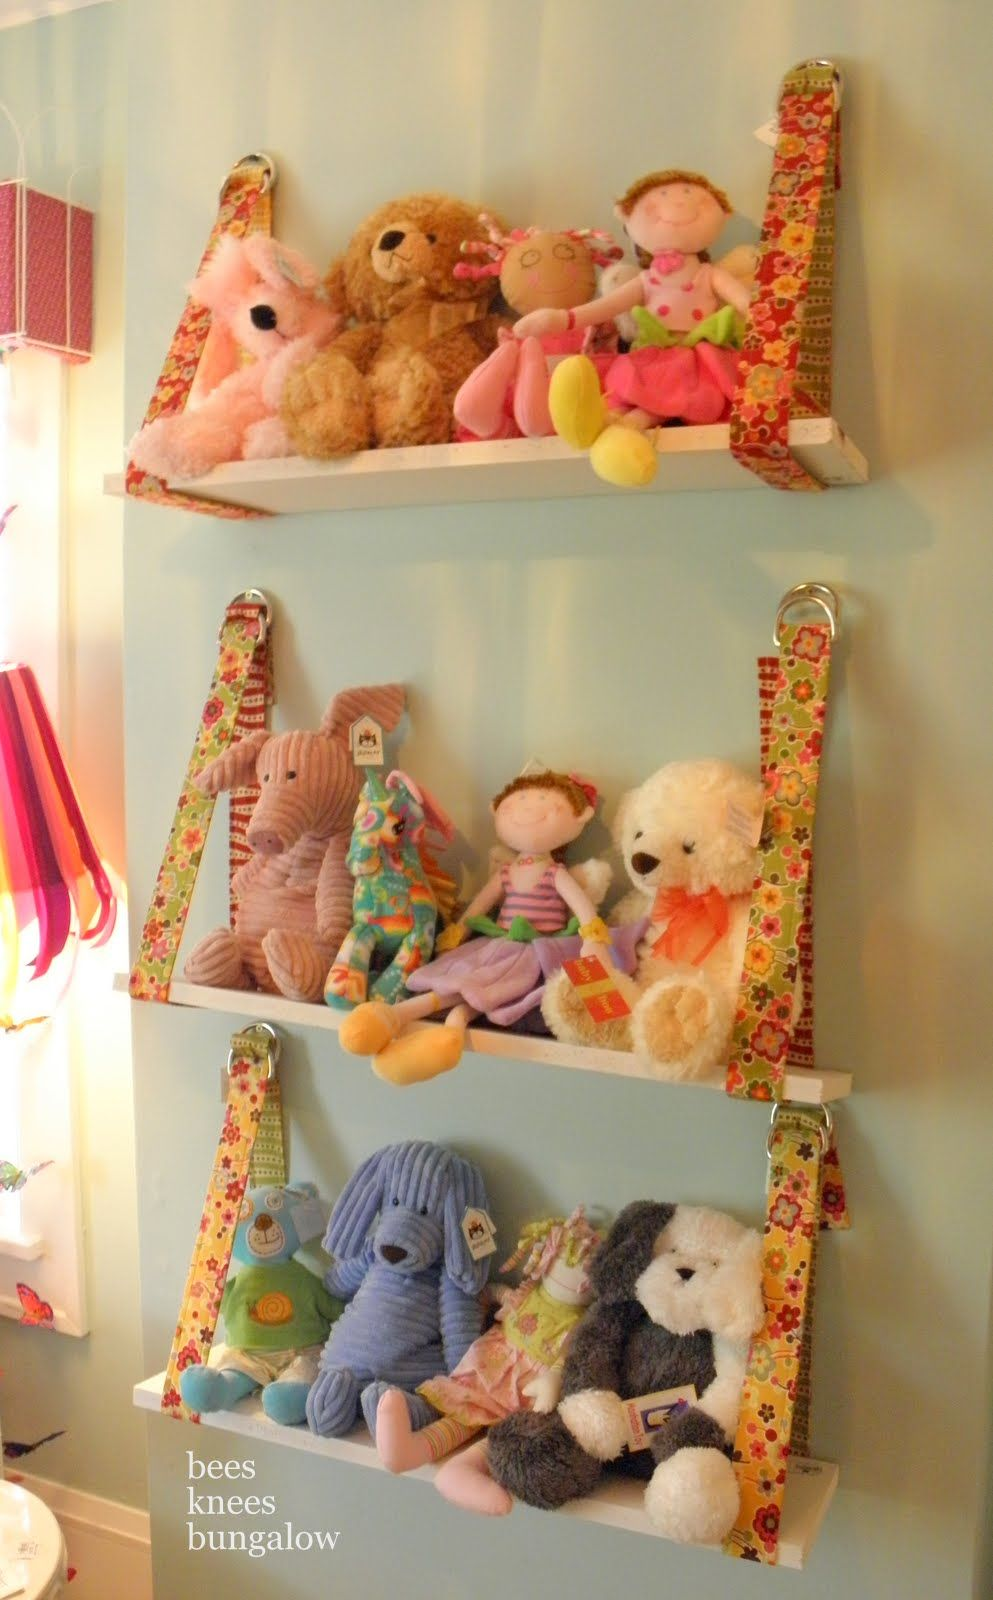 fun way to do shelving